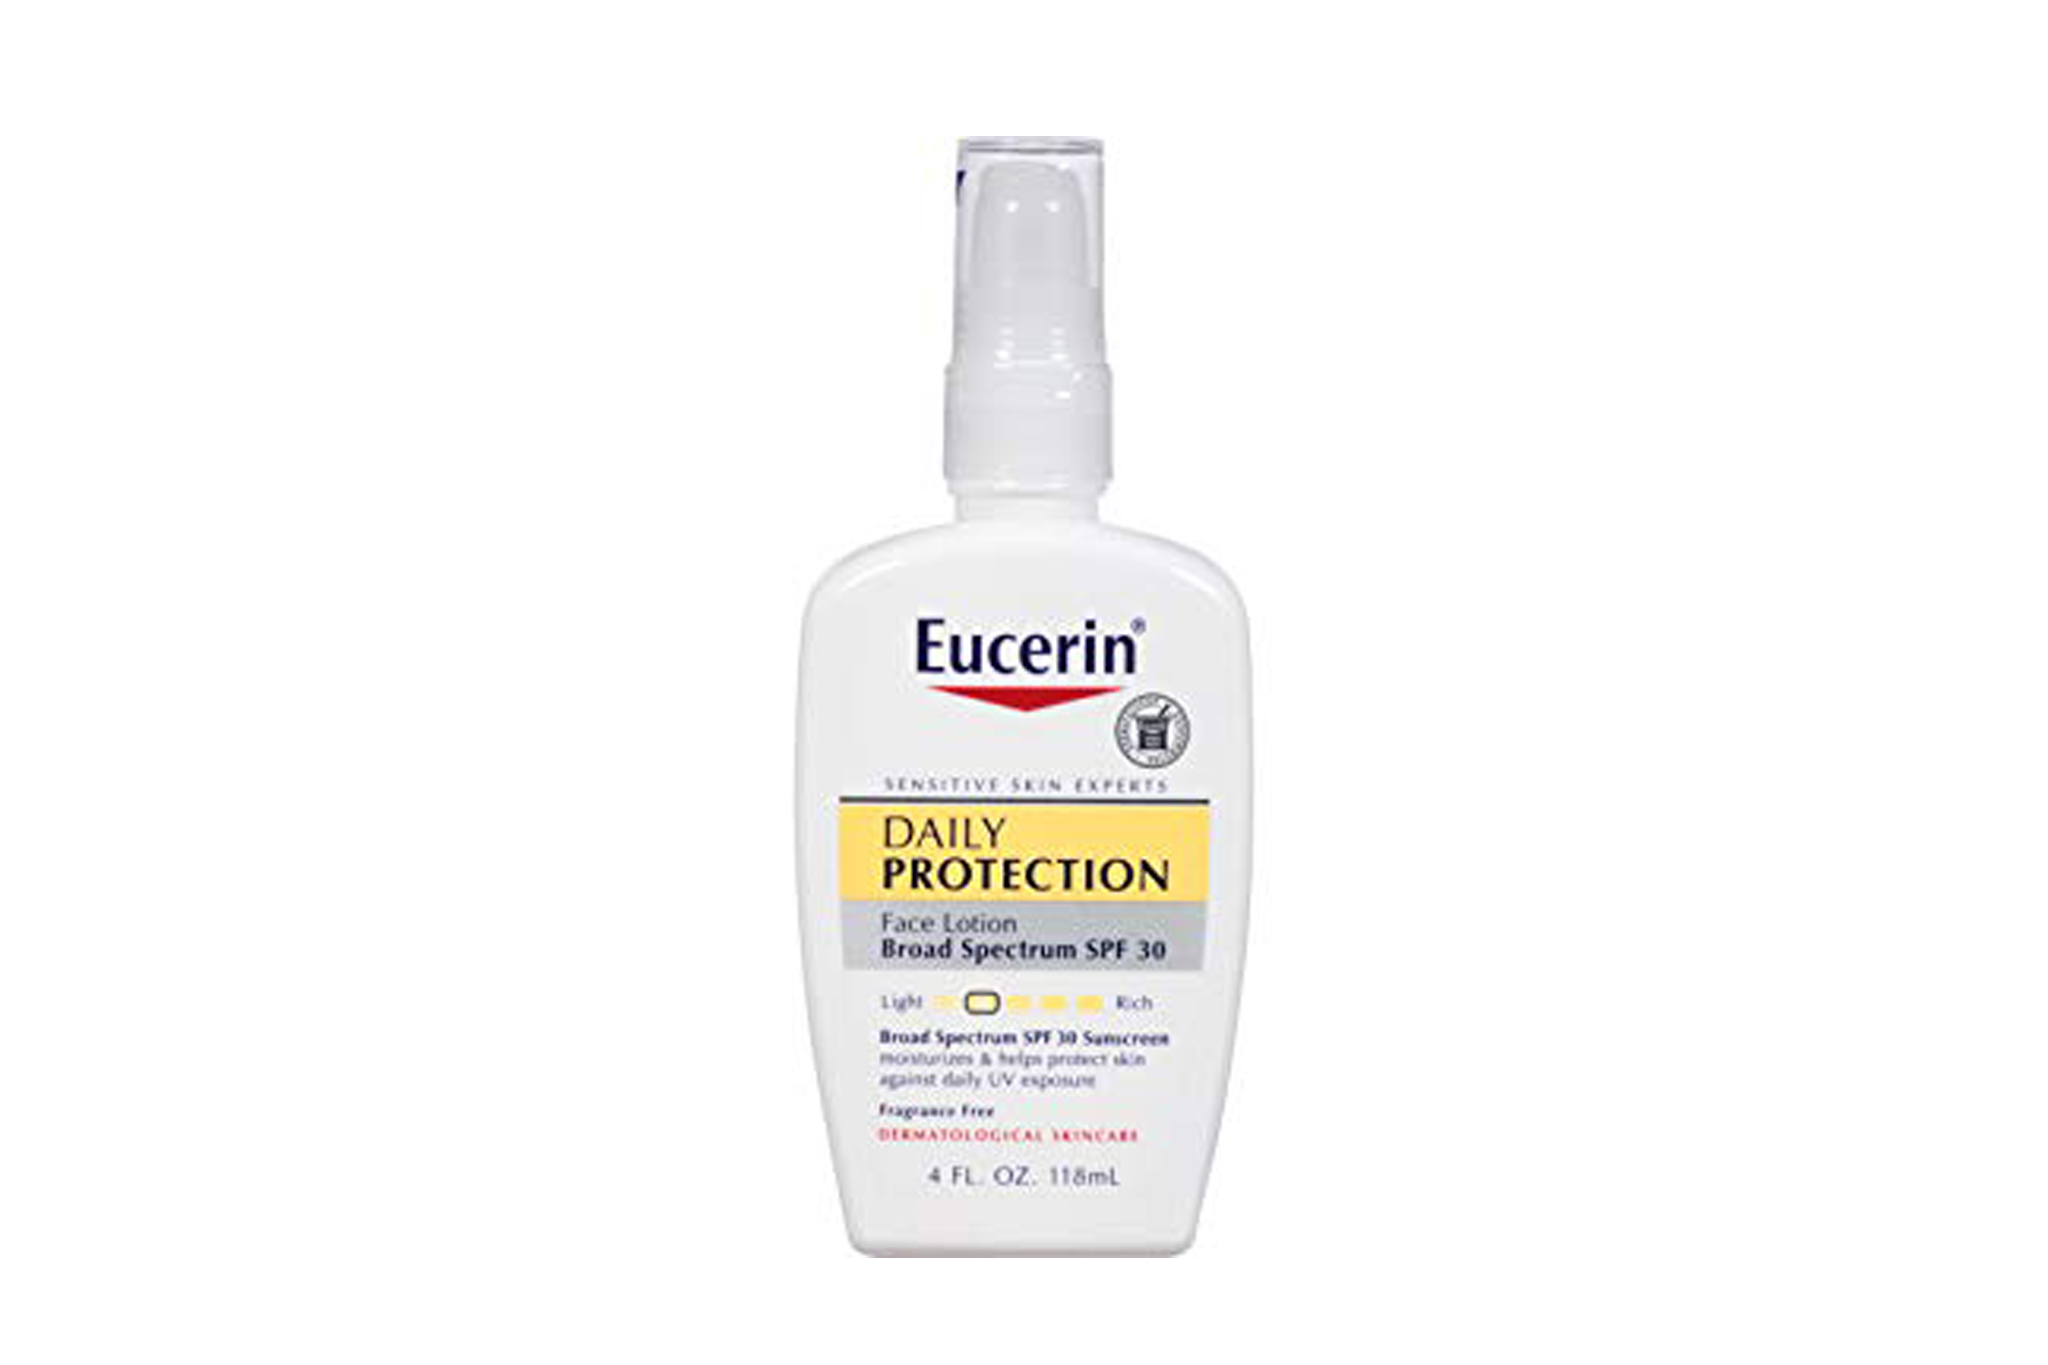 Eucerin Daily Protection Broad Spectrum SPF 30 Sunscreen